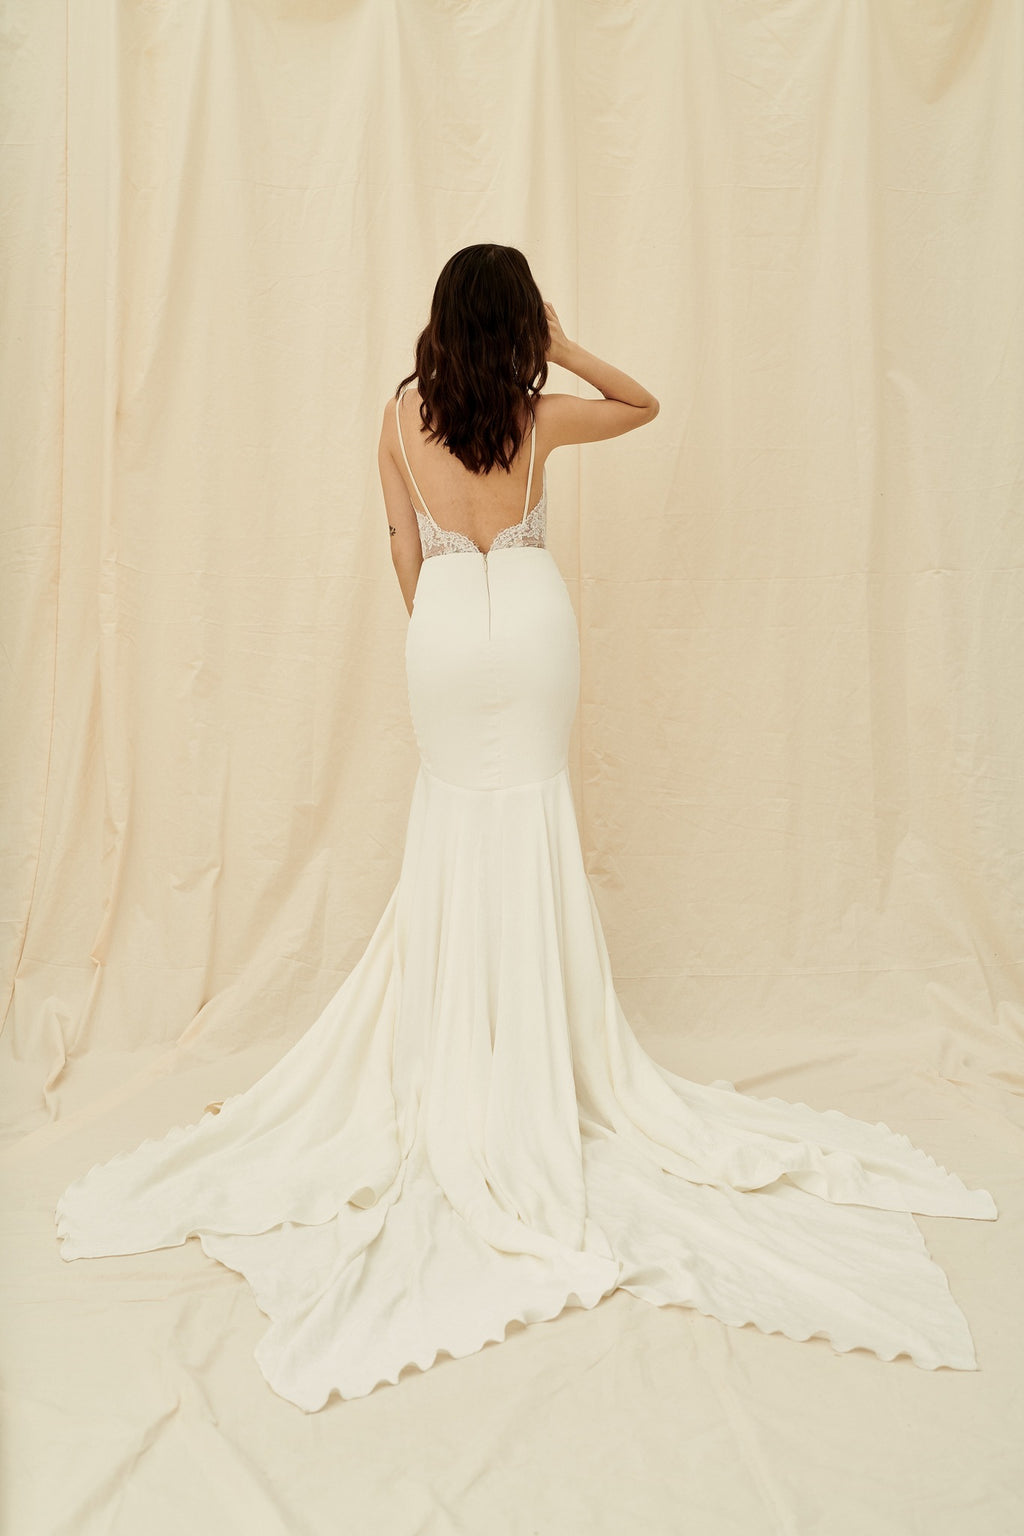 fitted crepe dress with lace sides, open back, and a unique long train